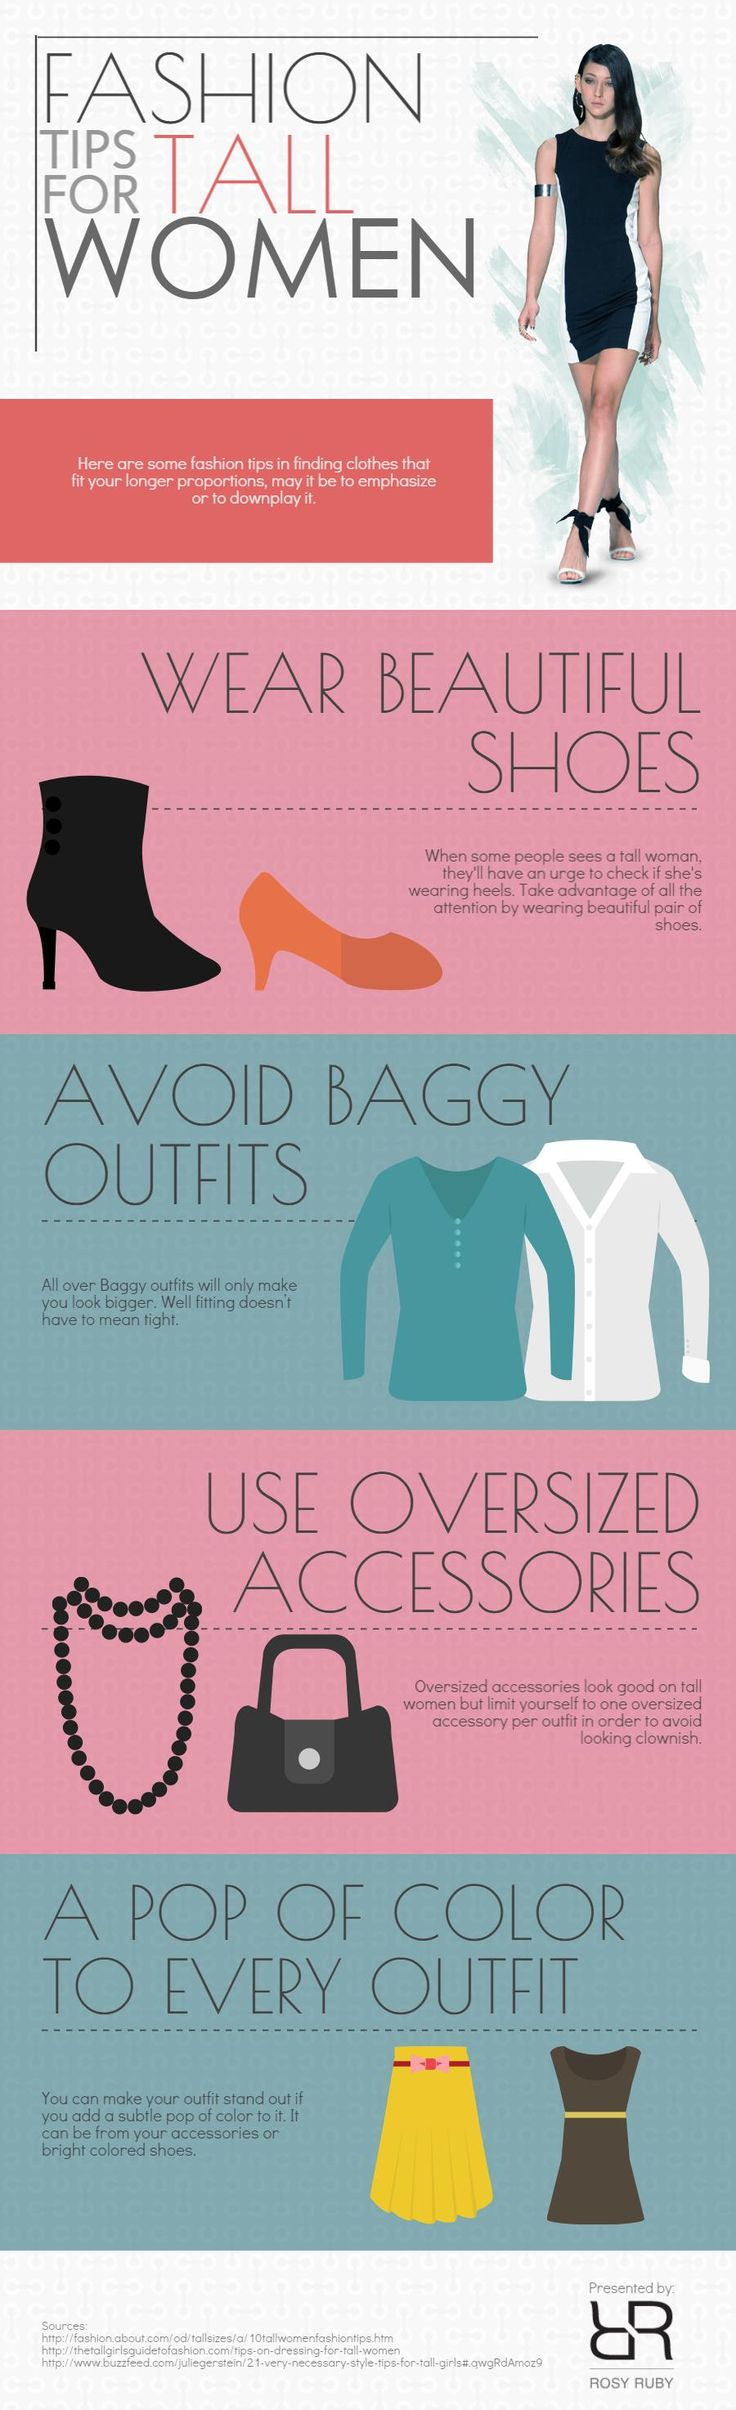 If you're struggling with what to wear this season, check out these useful fashion tips for tall women.